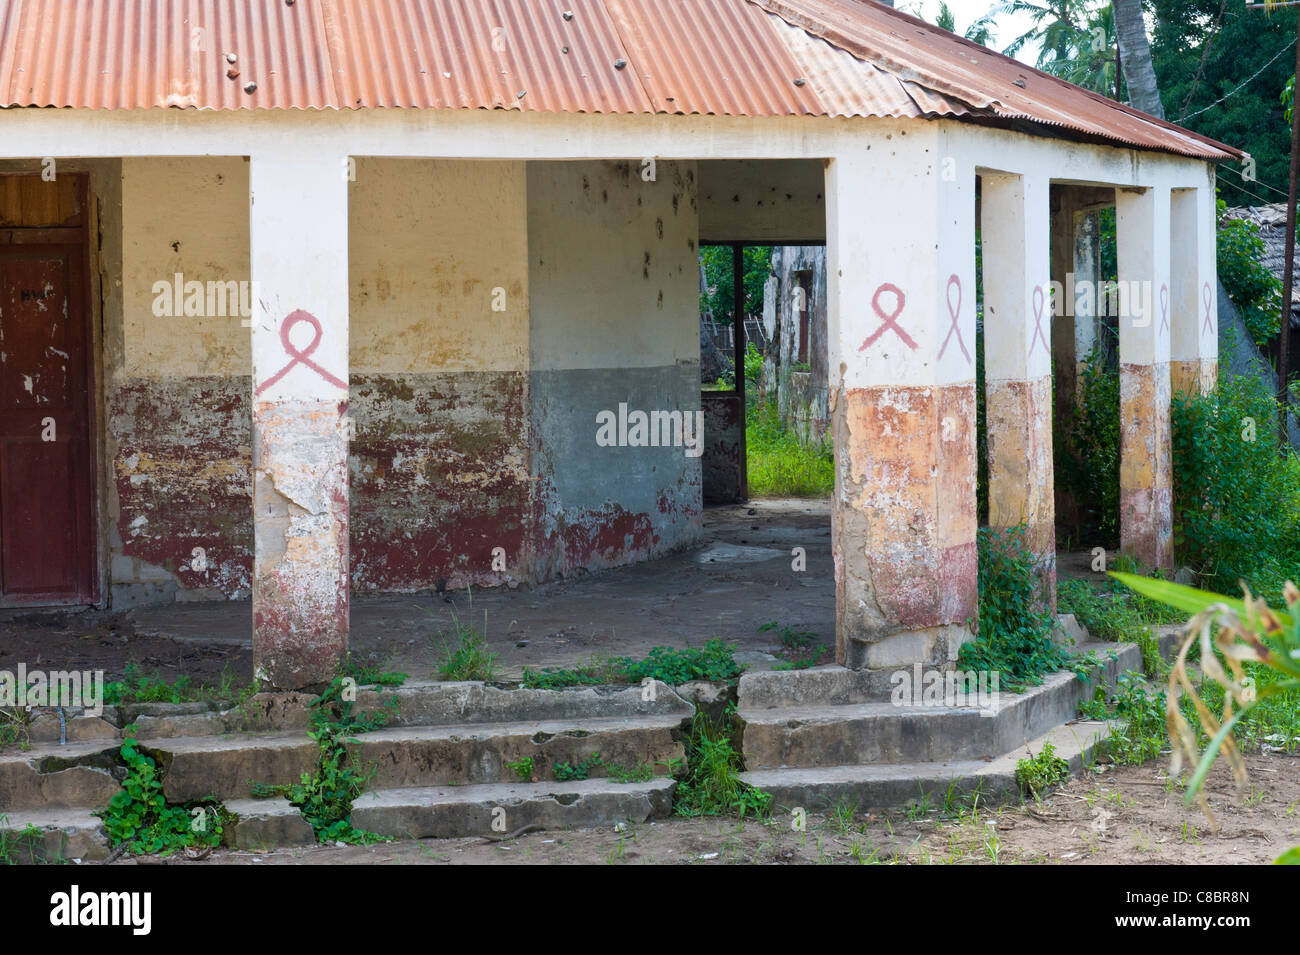 The red ribbon is an international symbol of AIDS awareness in Quelimane Mozambique - Stock Image